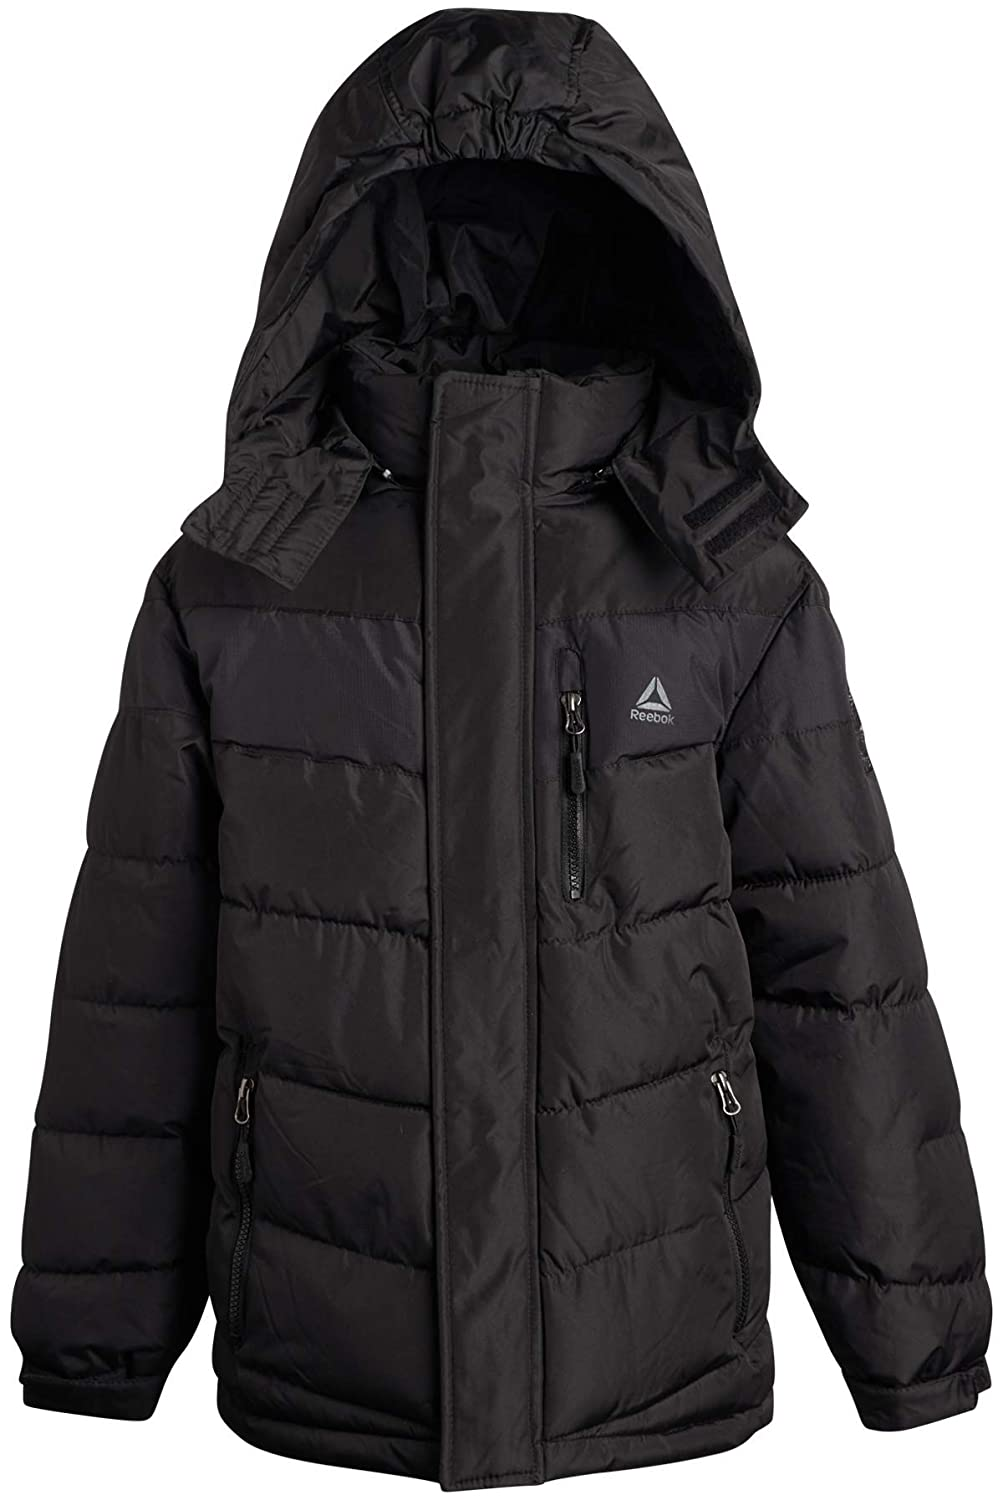 Reebok Boys Outerwear Heavyweight Thick Winter Bubble Puffer Jacket